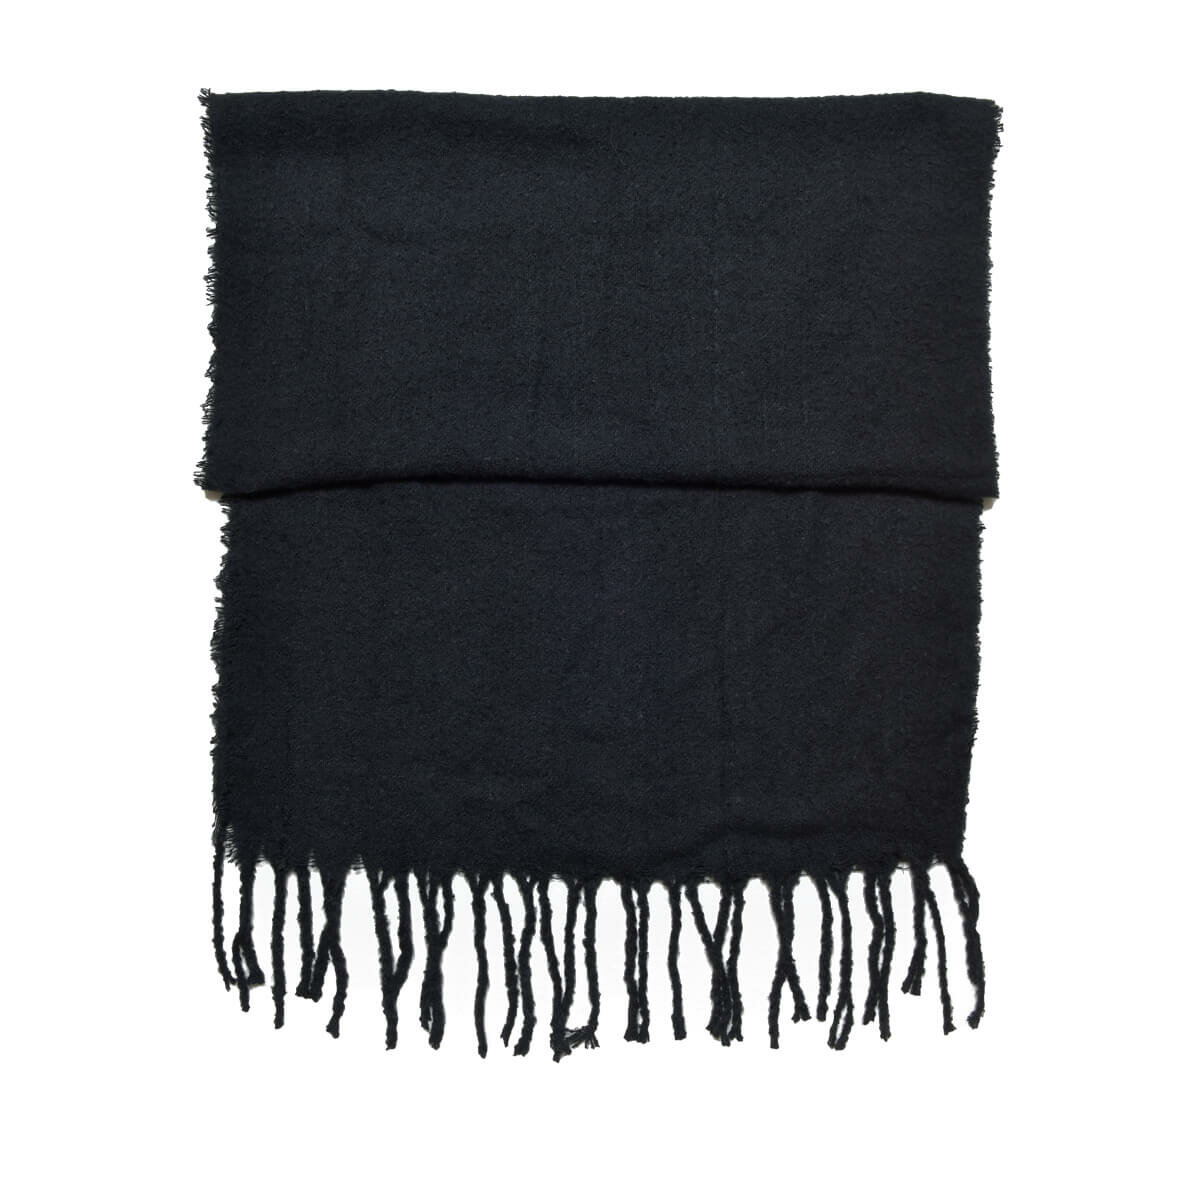 FLO SAL 11129 85Z Black Women Shawl BUTIGO